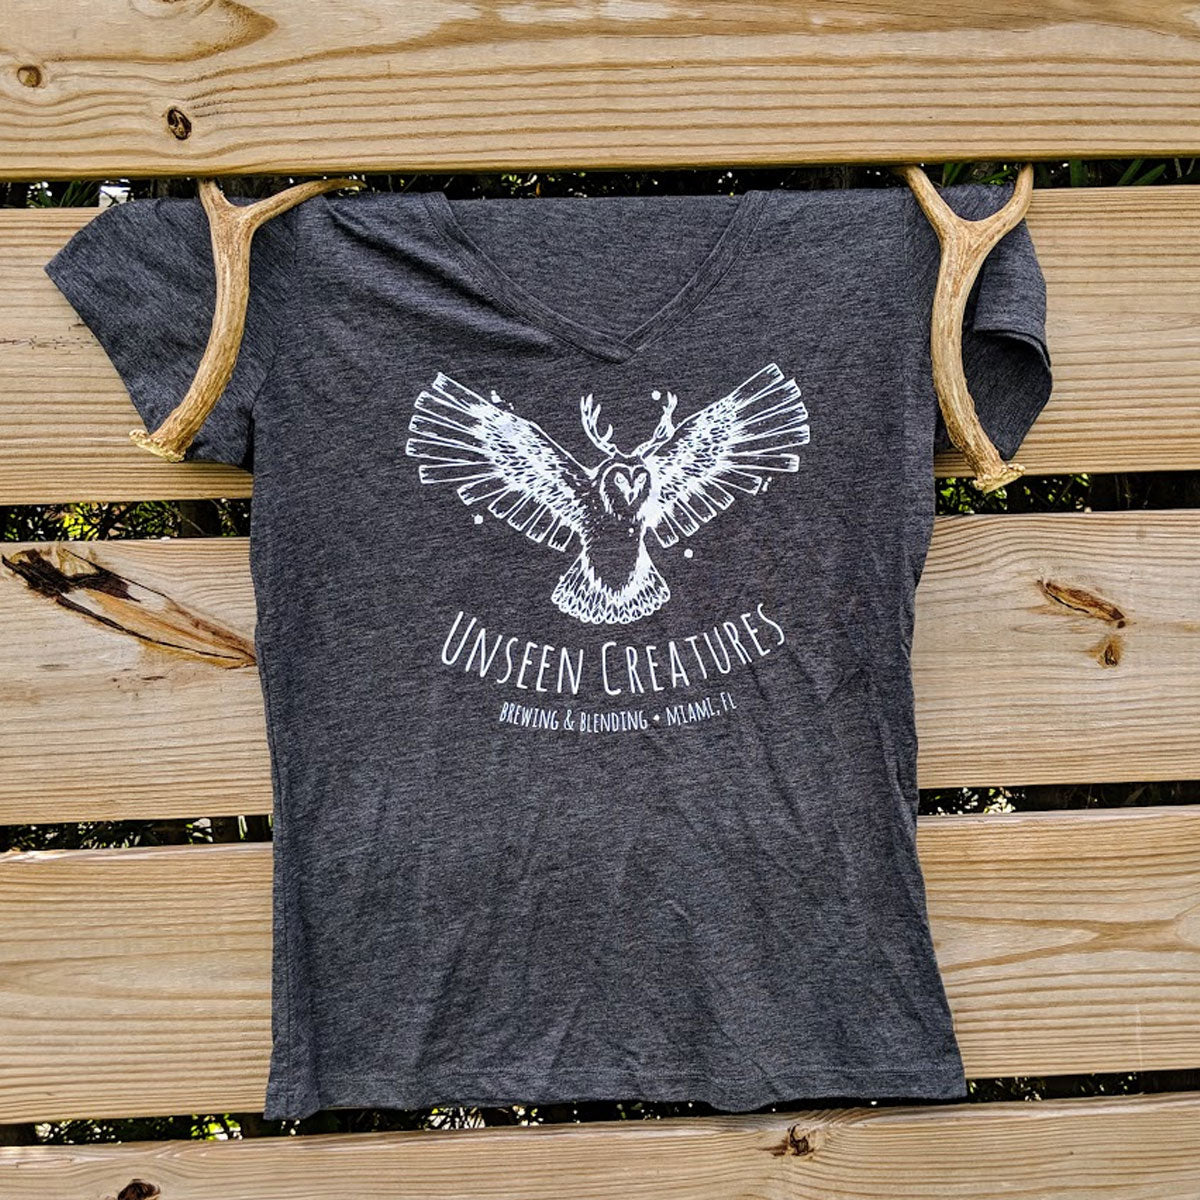 Front View of Women's T shirt in dark grey with unseen creatures logo in white on center of chest hung on a wooden fence with decorative antlers